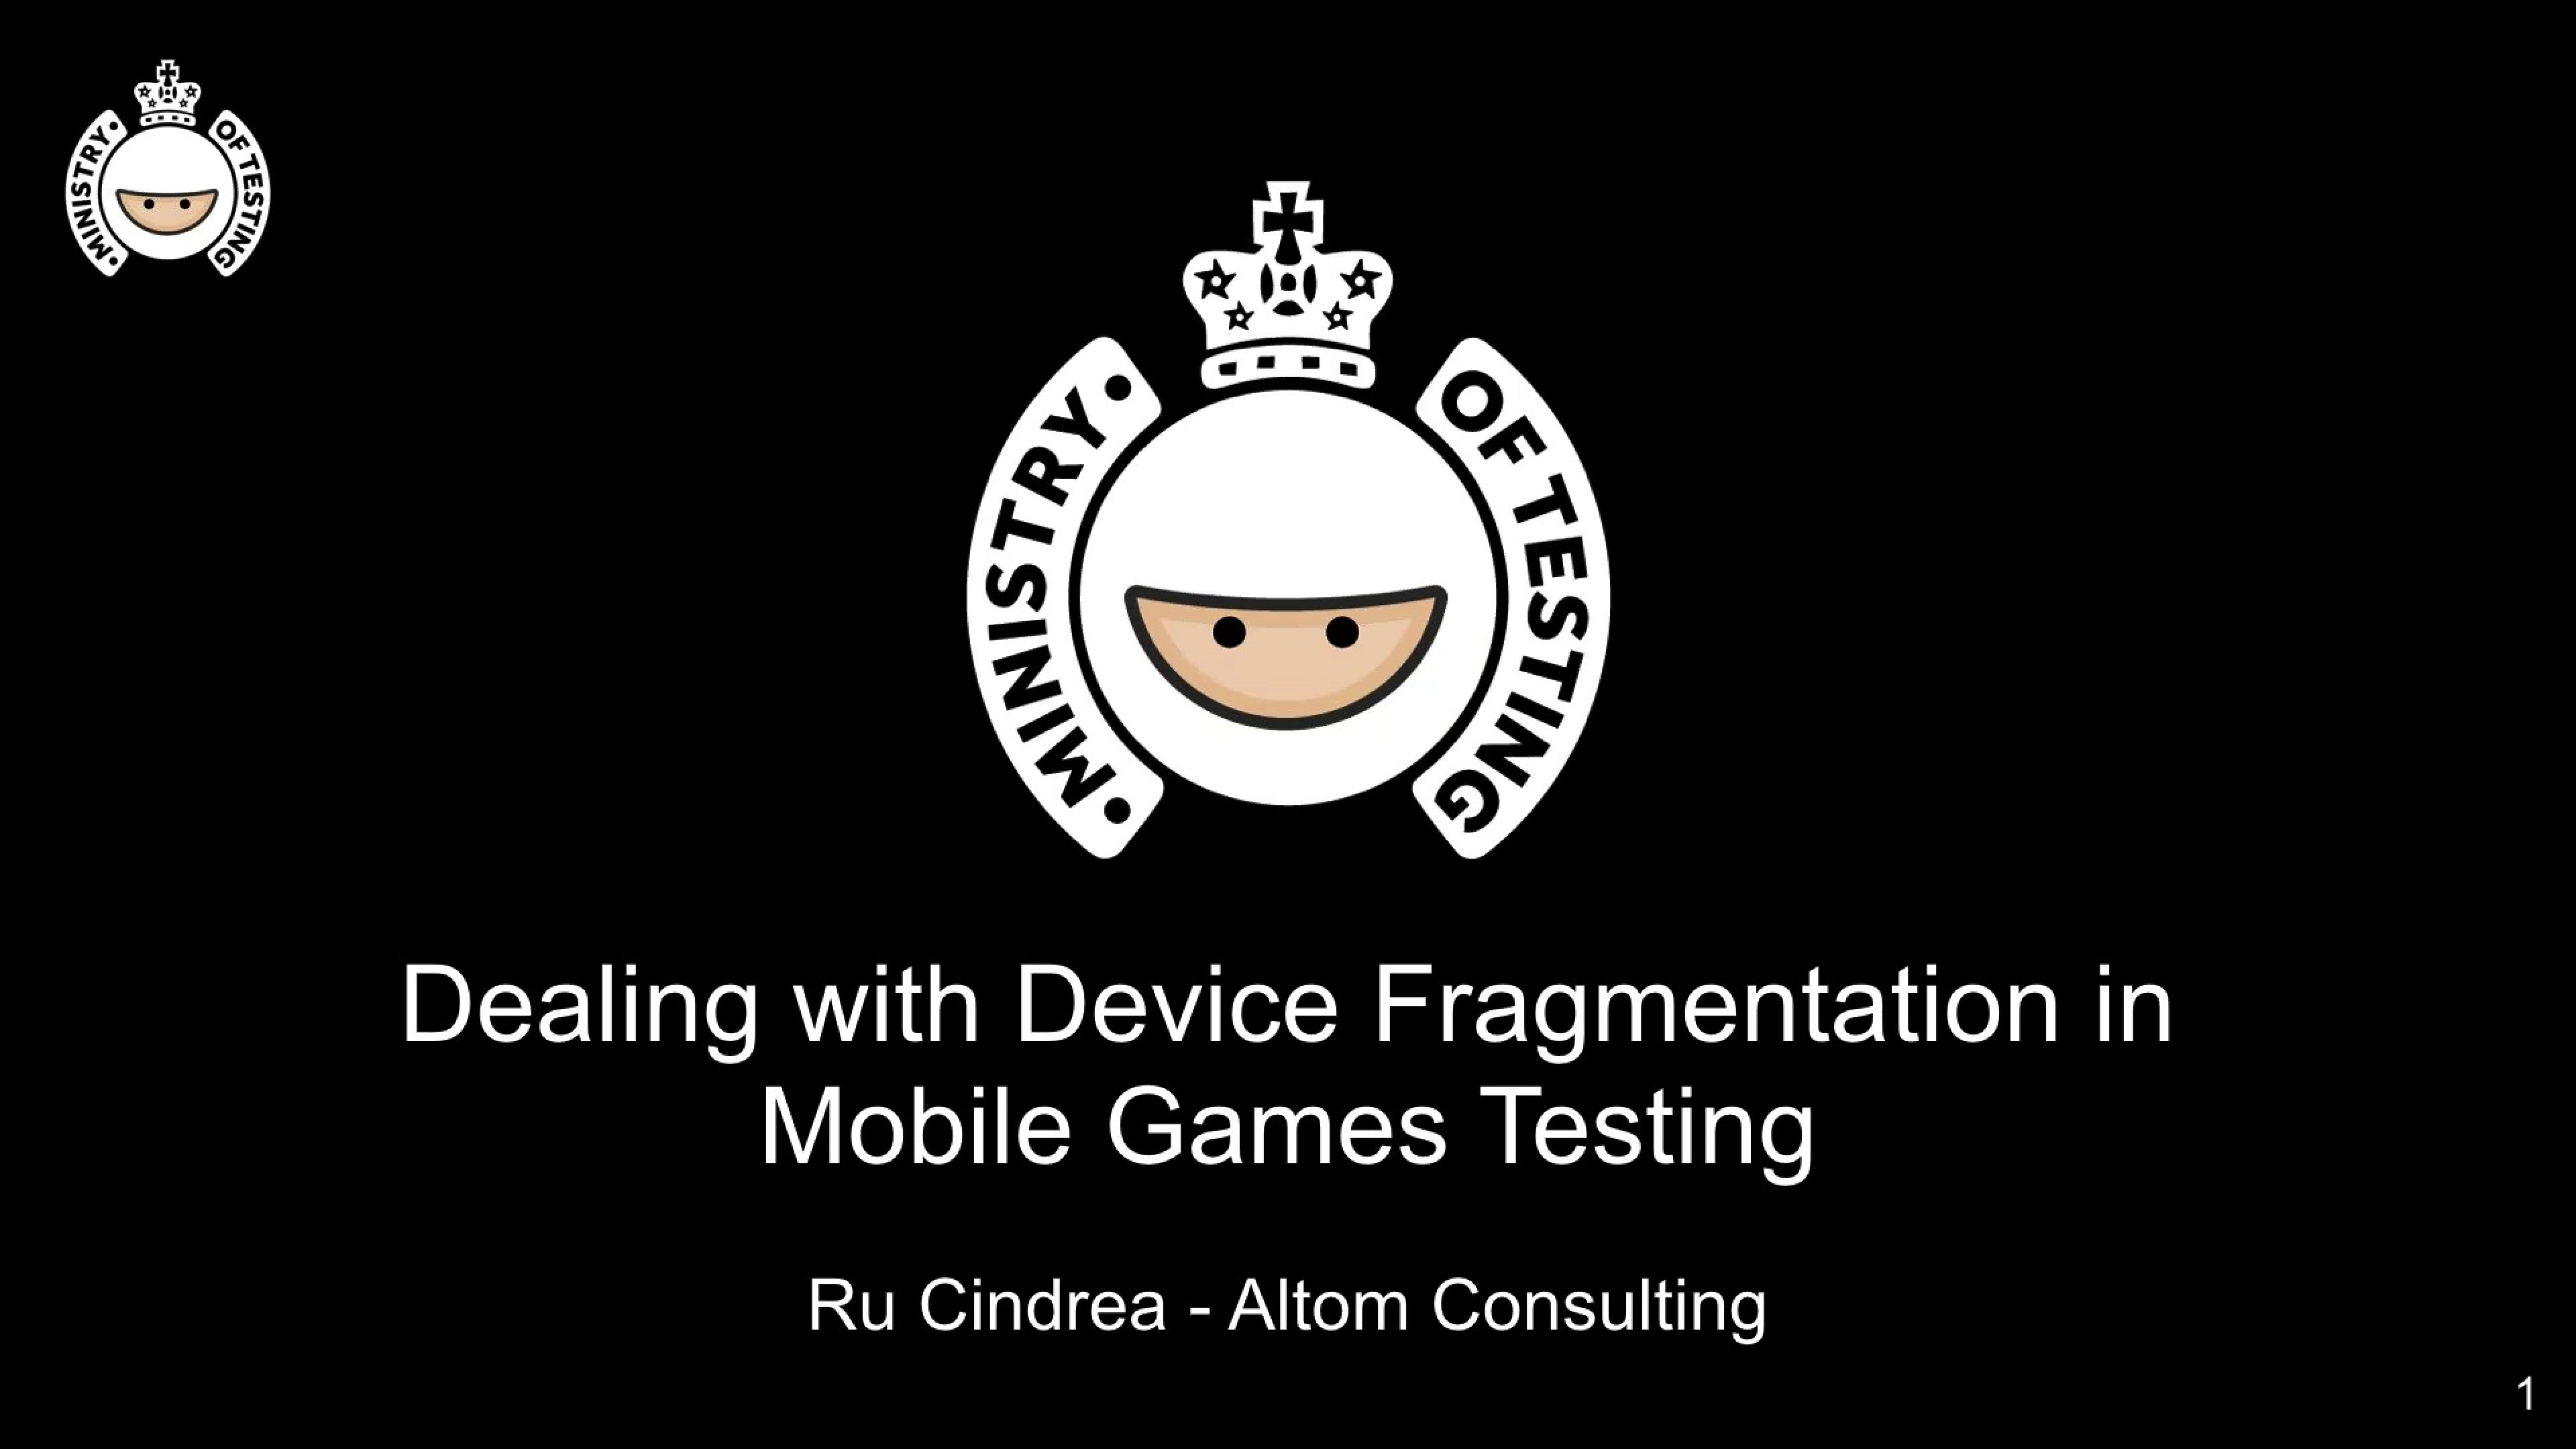 Dealing with Device Fragmentation in Mobile Games Testing with Ru Cindrea